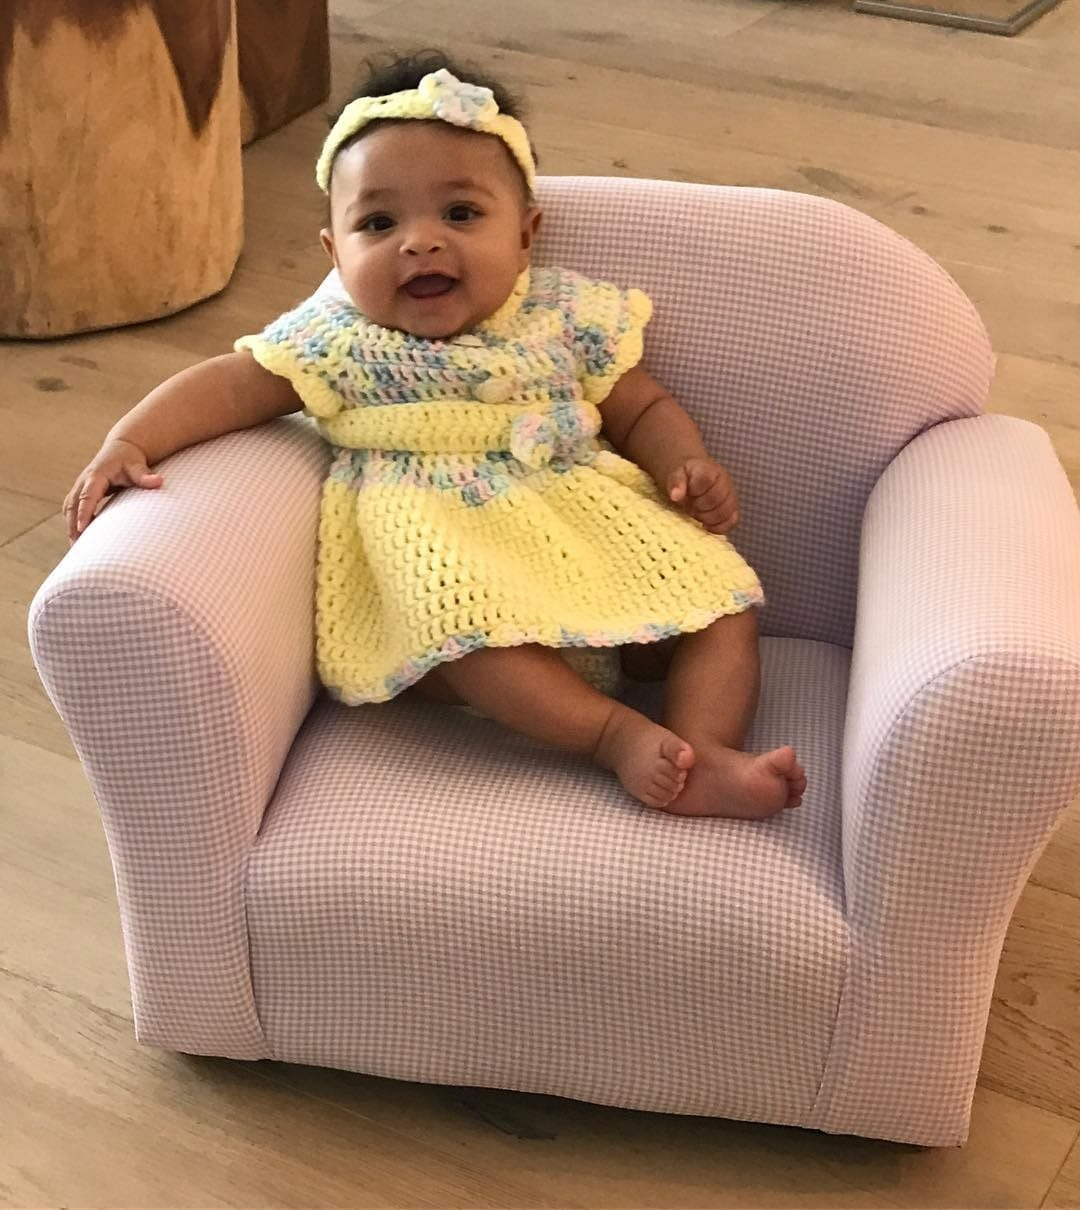 USA: un somptueux cadeau offert à la fille de Serena Williams (photos)